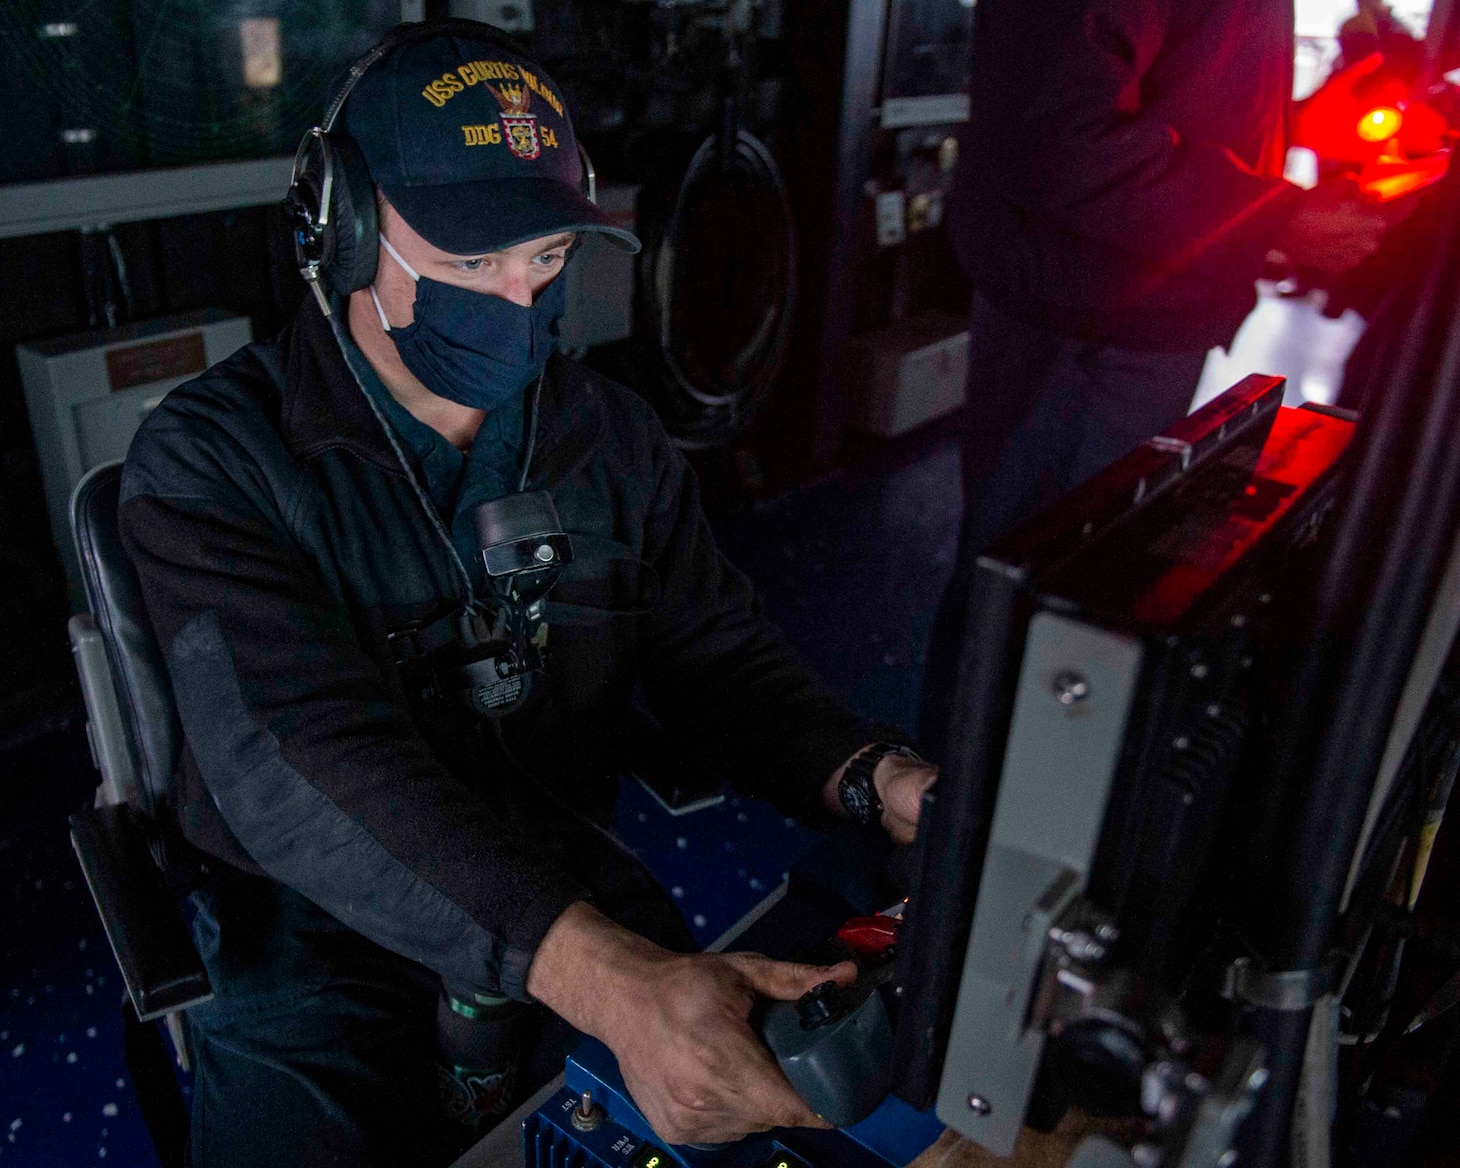 TAIWAN STRAIT (Feb. 23, 2020) -- Gunner's Mate 3rd Class Michael Griffith, from Chicago, monitors a live camera feed aboard the Arleigh Burke-class guided-missile destroyer USS Curtis Wilbur (DDG 54). Curtis Wilbur is assigned to Destroyer Squadron (DESRON) 15, the Navy's largest forward-deployed DESRON and the U.S. 7th Fleet's principal surface force.